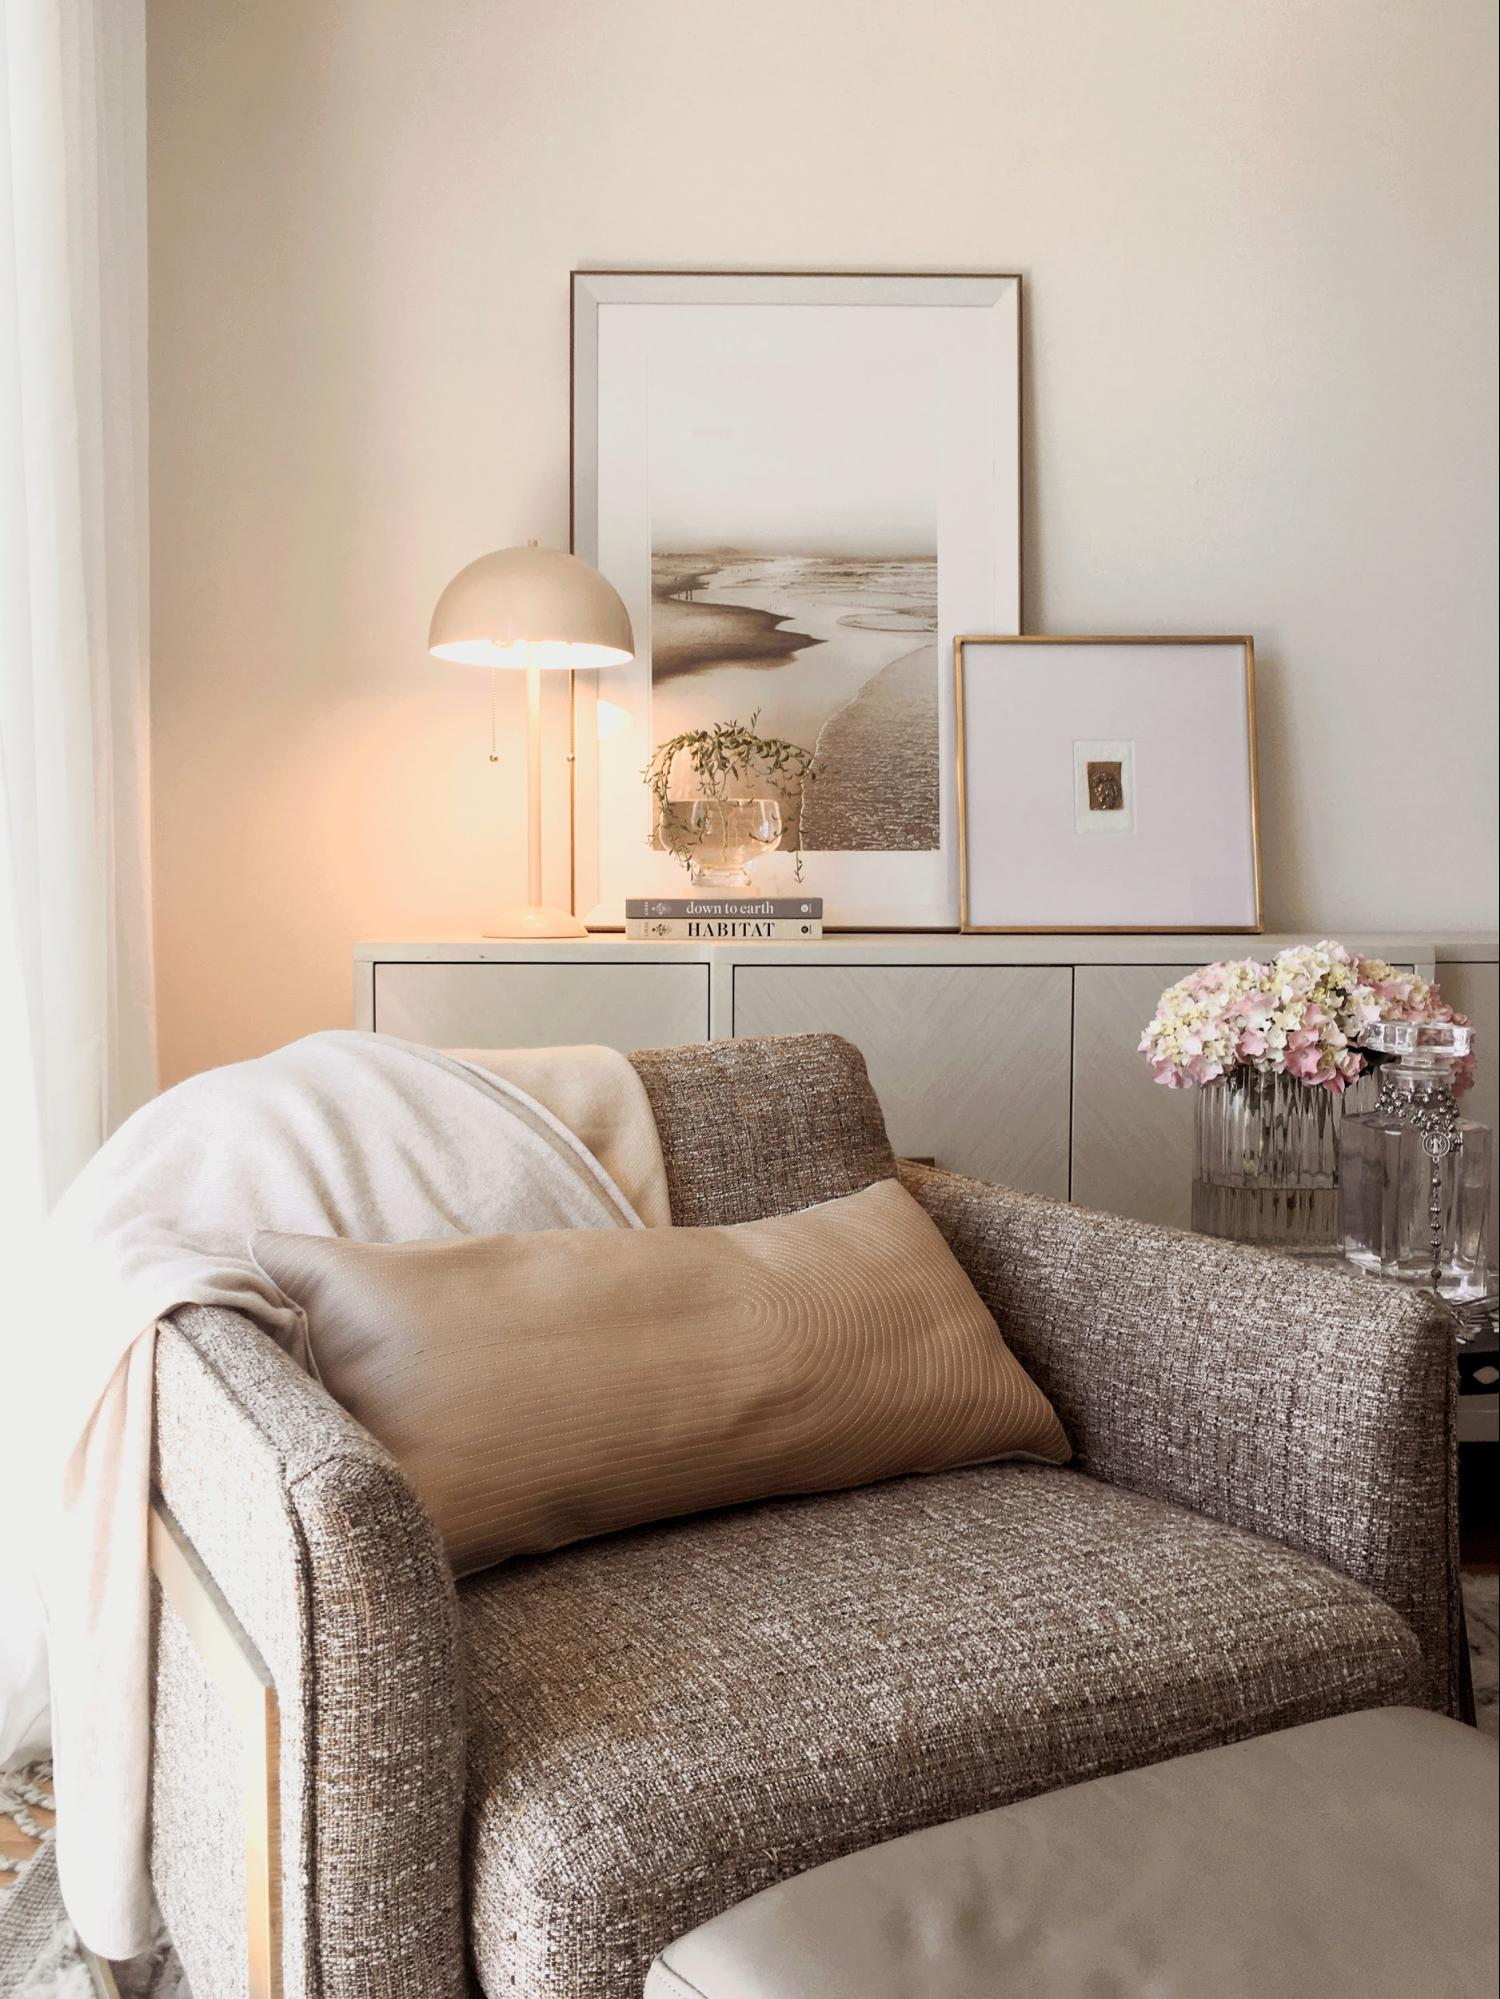 Setting the trend for your Fall home decor